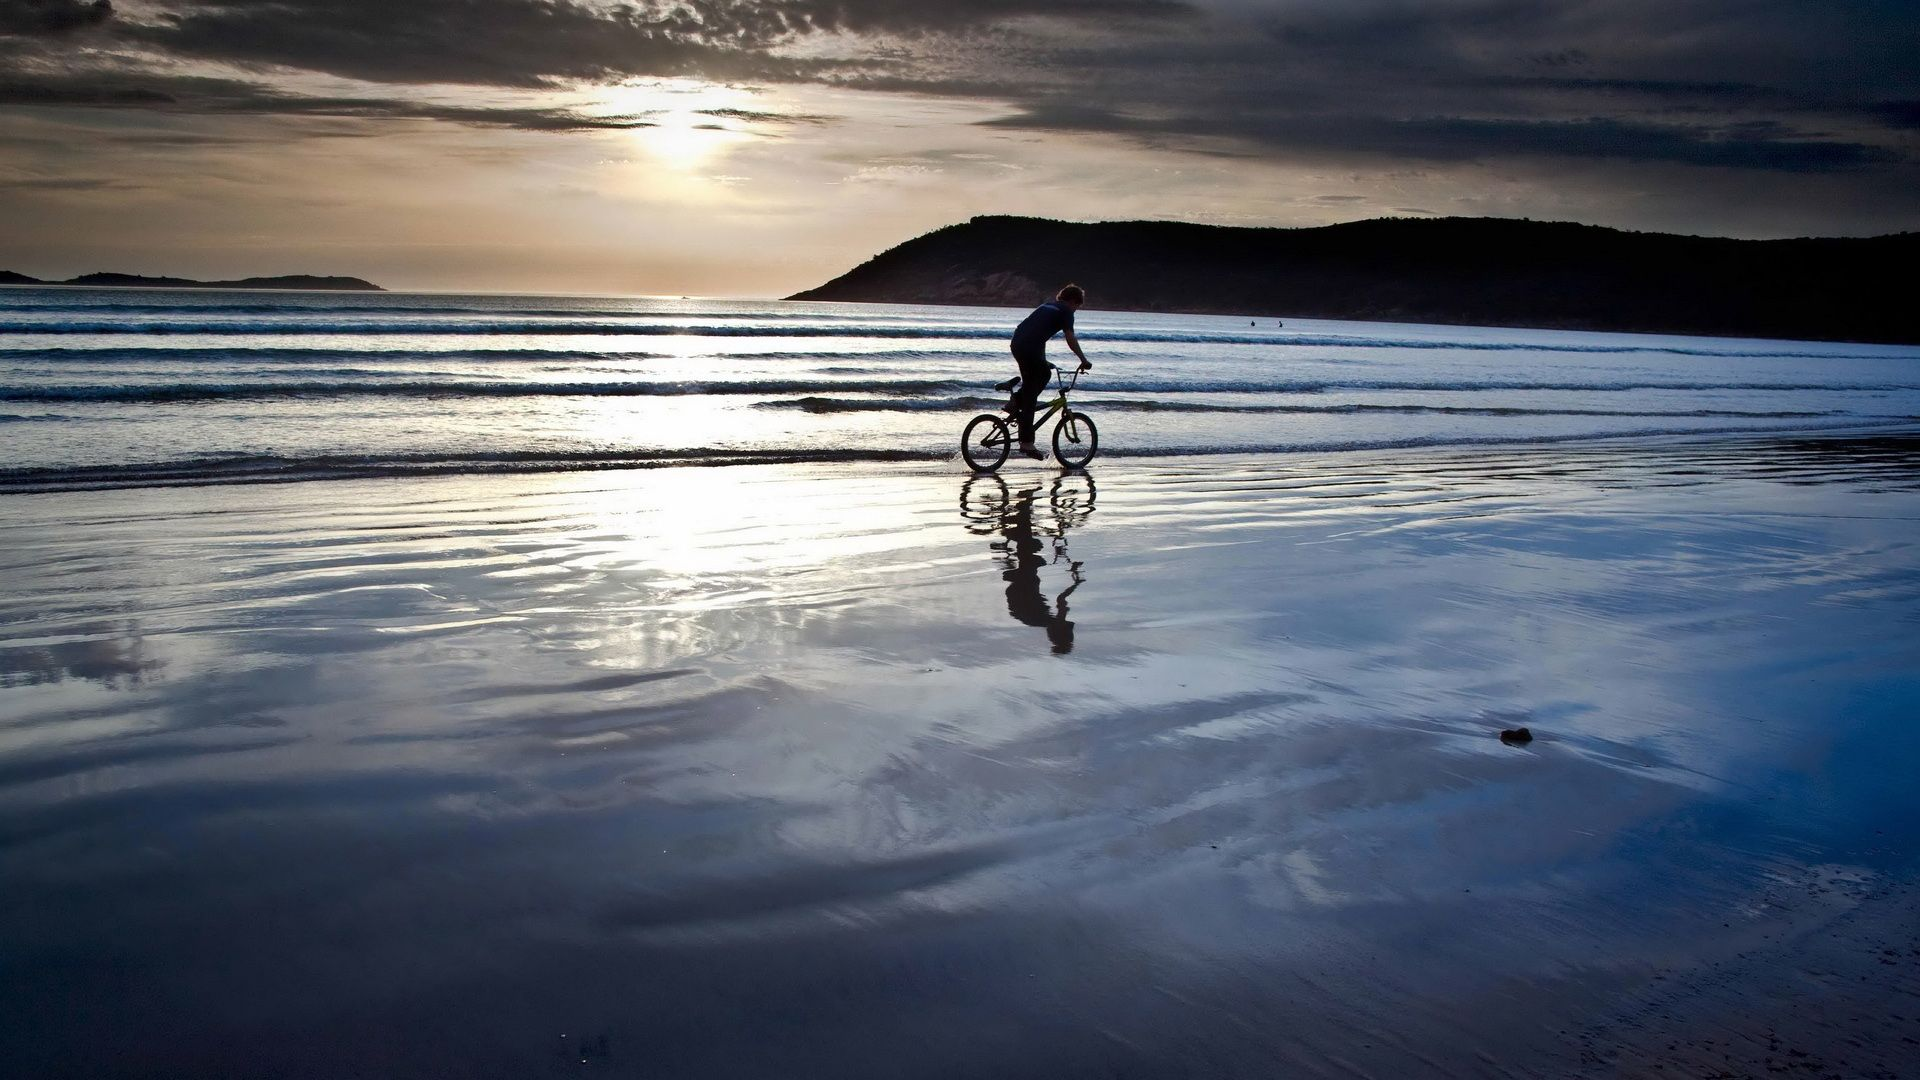 Permalink to Bicycle Wallpaper Beach